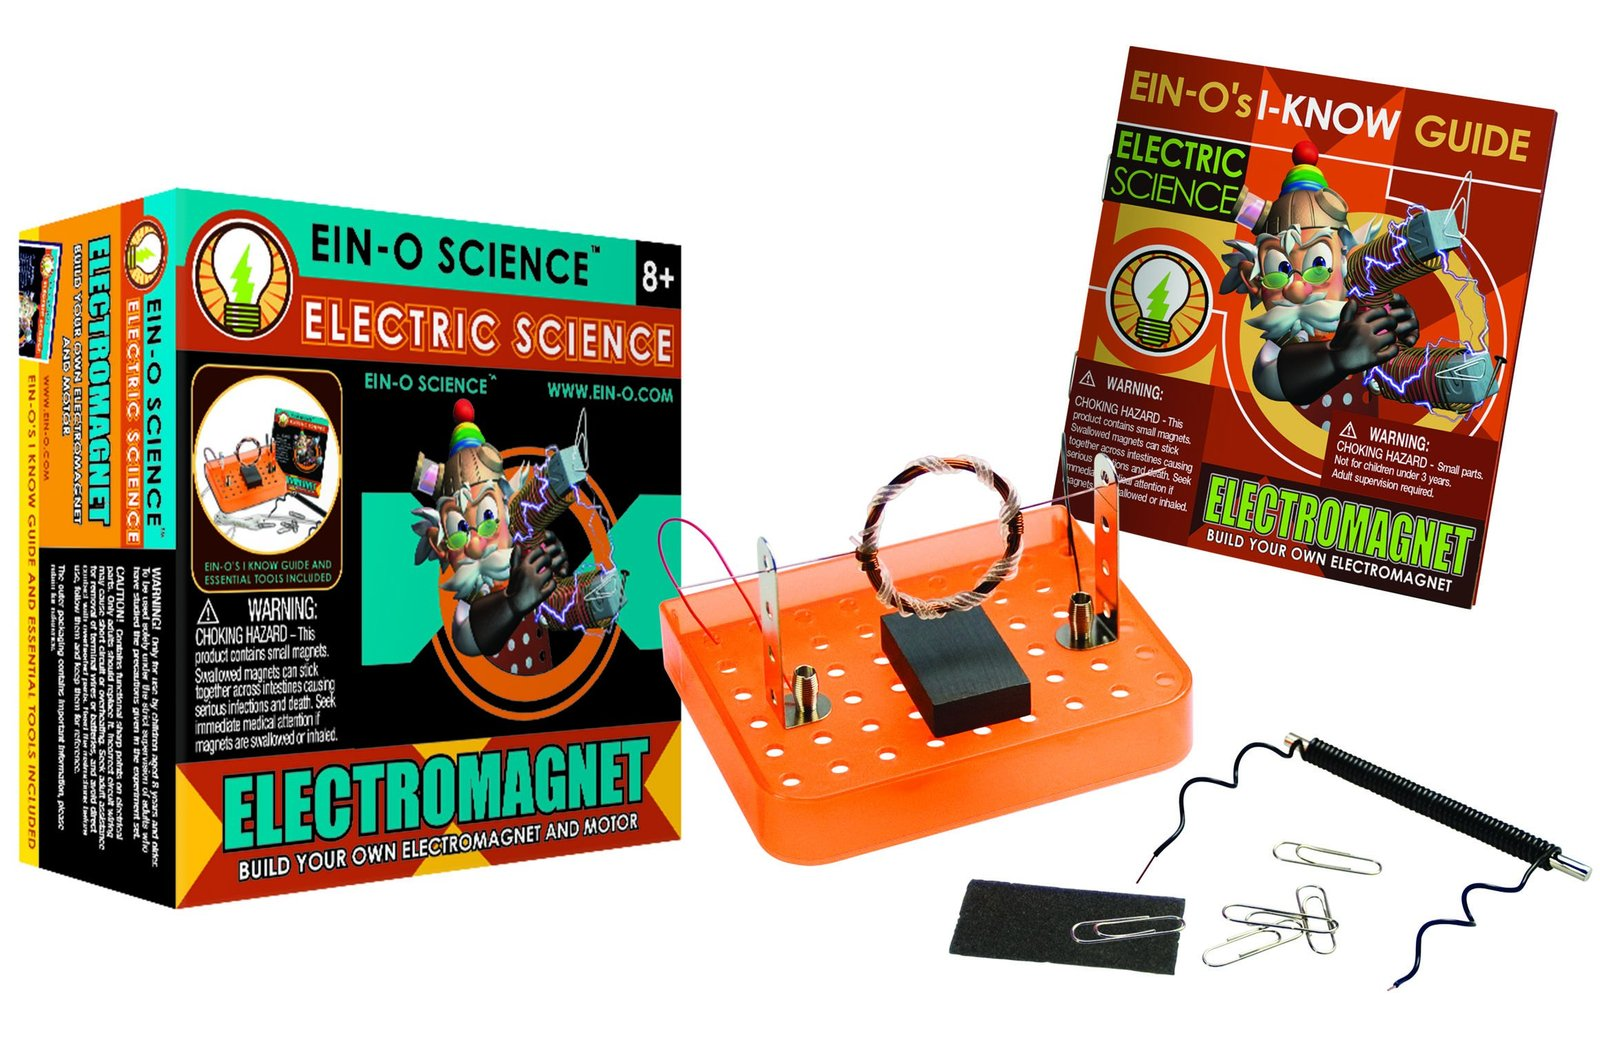 Electric Science - Electromagnet